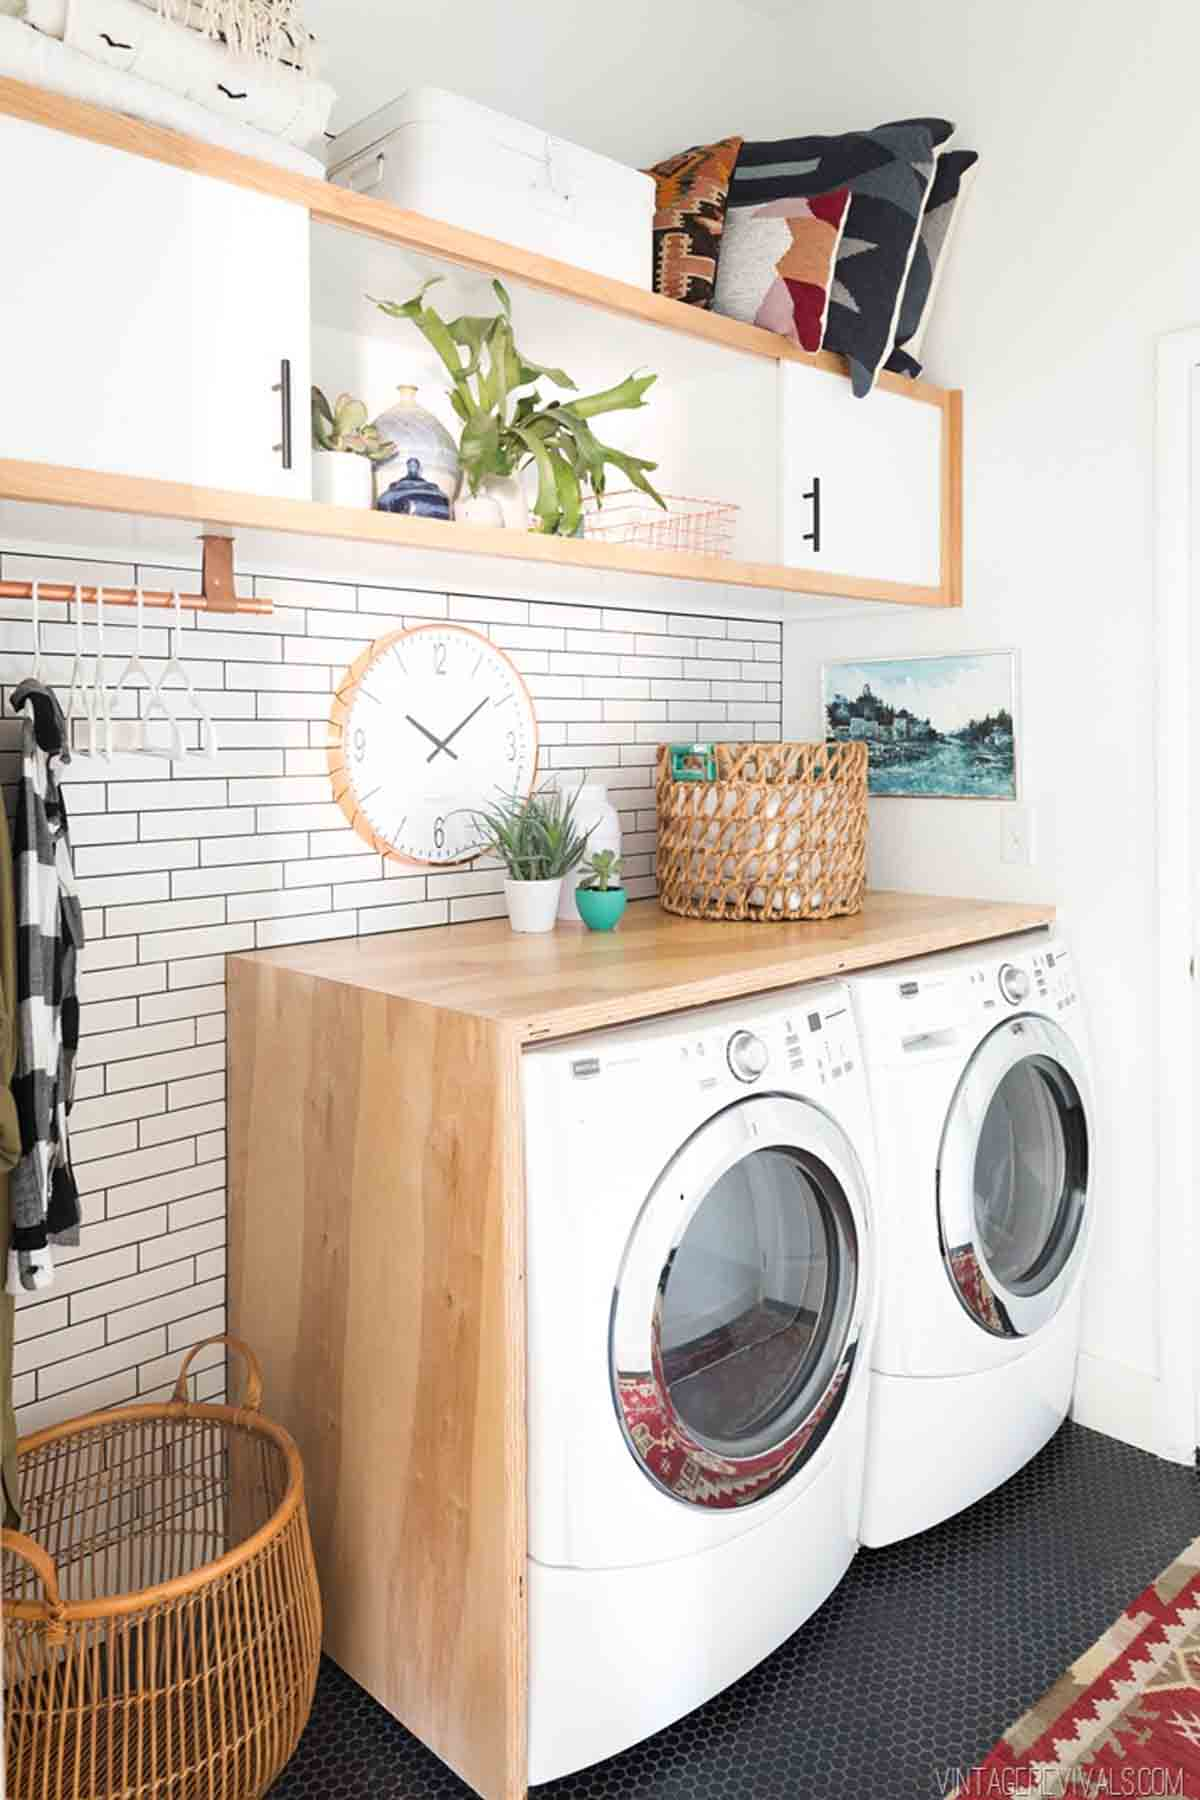 15 laundry room storage and organization ideas how to. Black Bedroom Furniture Sets. Home Design Ideas